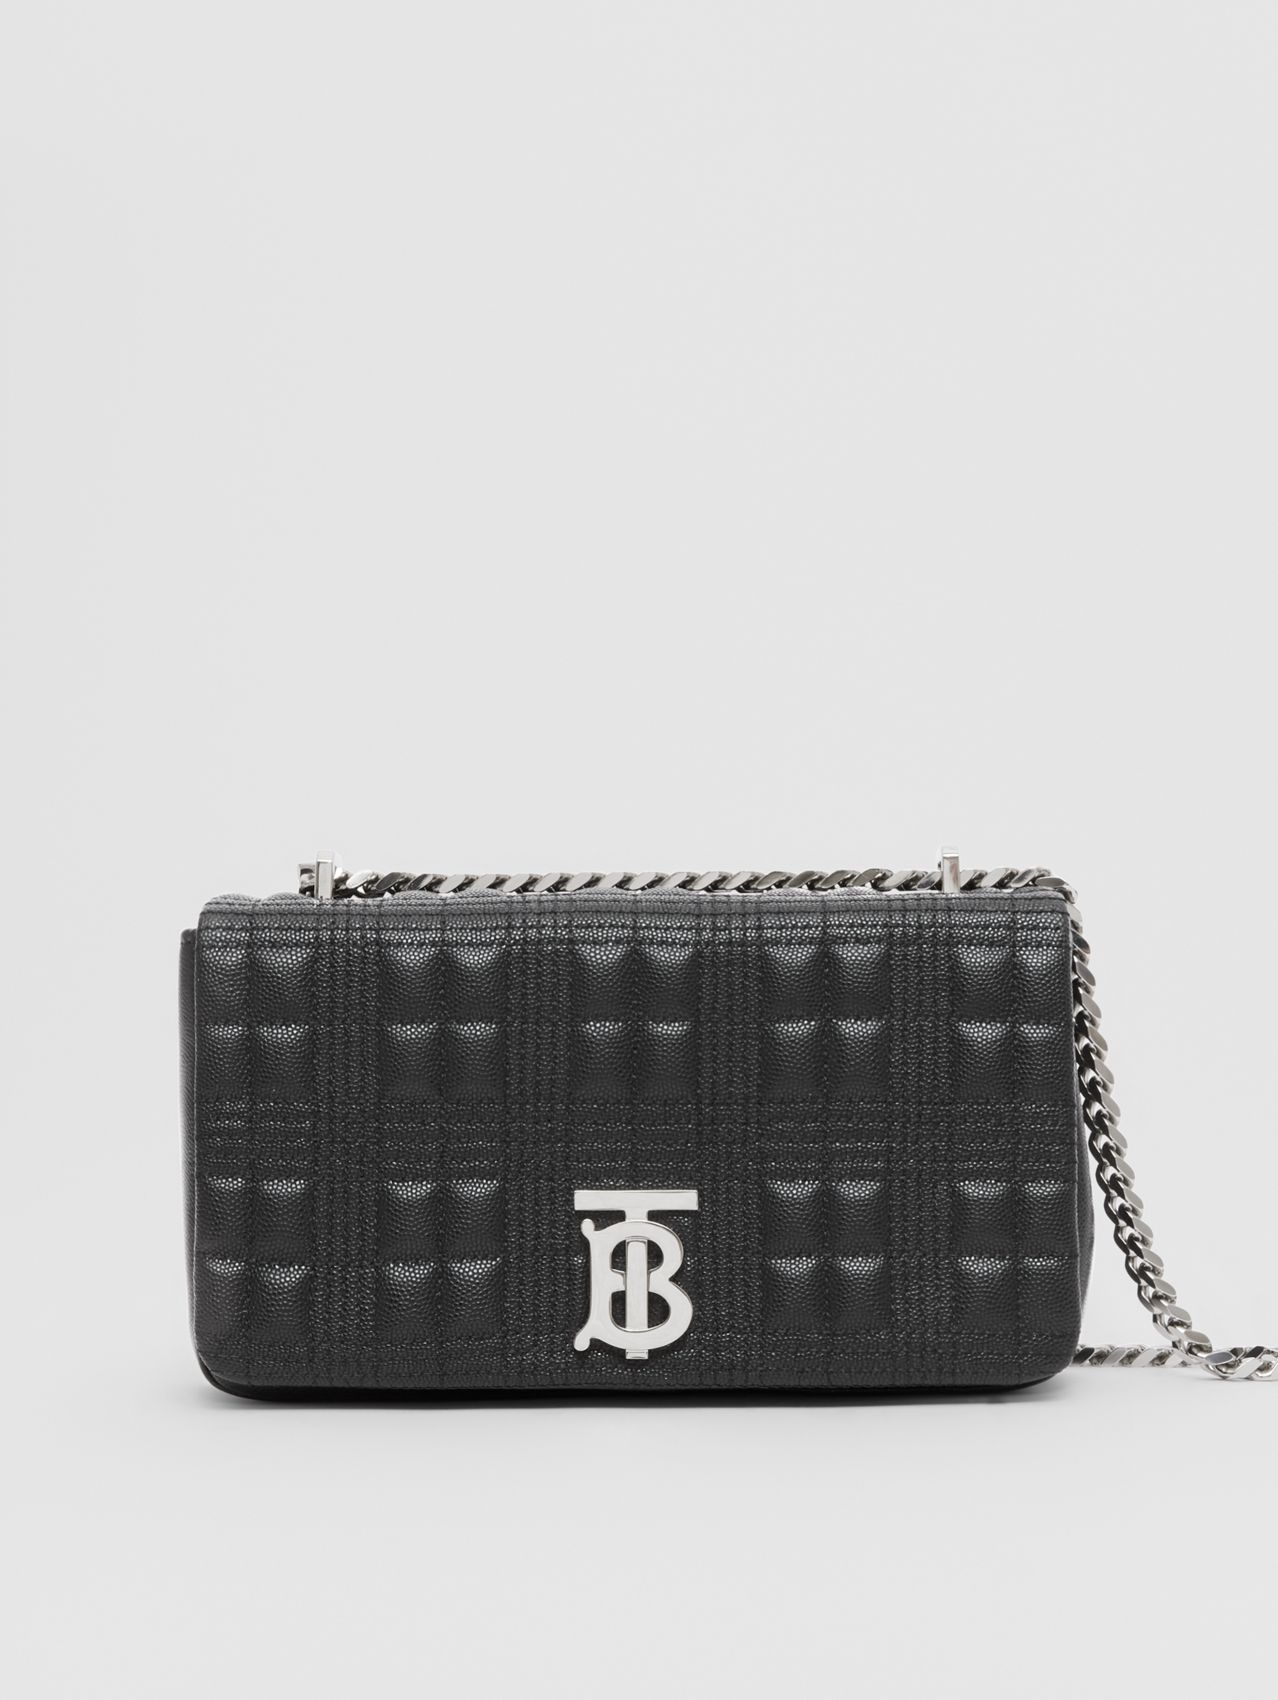 Small Quilted Grainy Leather Lola Bag in Black/palladium